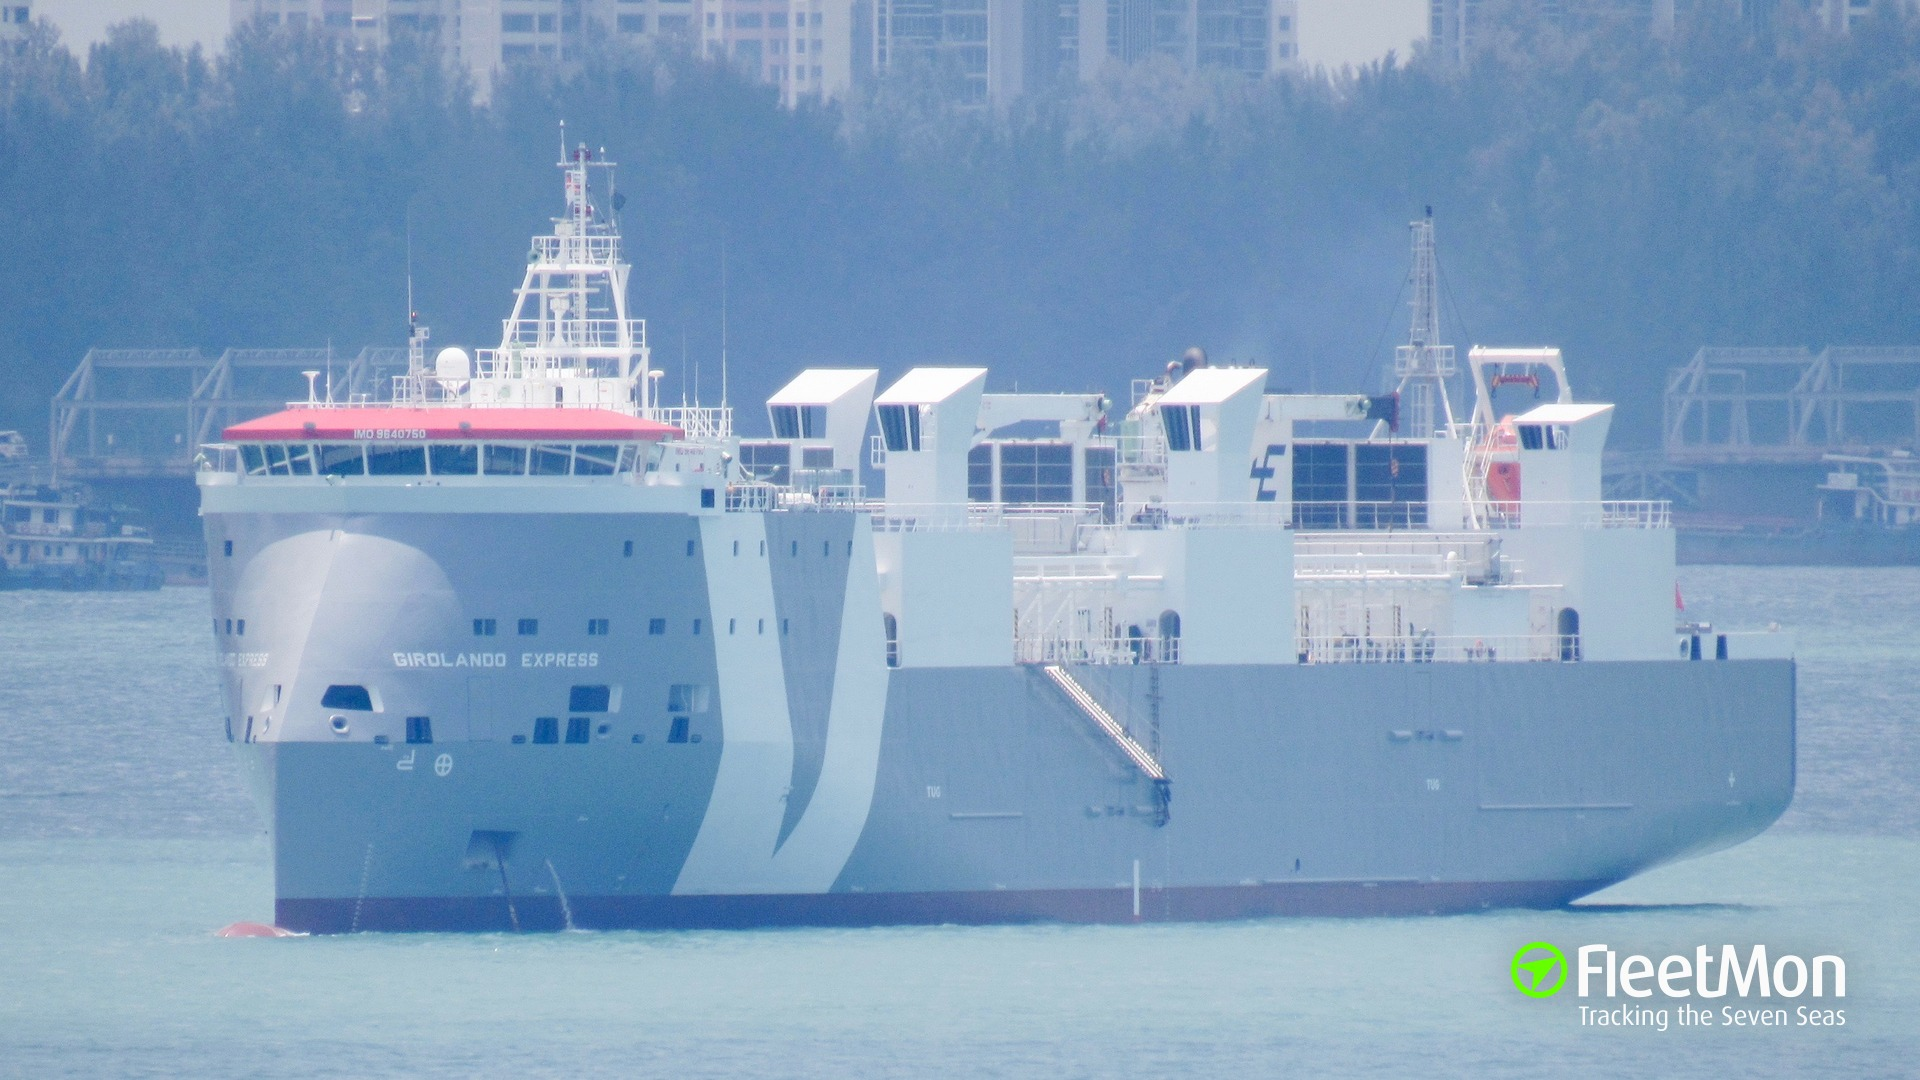 Livestock carrier GIROLANDO EXPRESS stranded with 4245 cattle on board